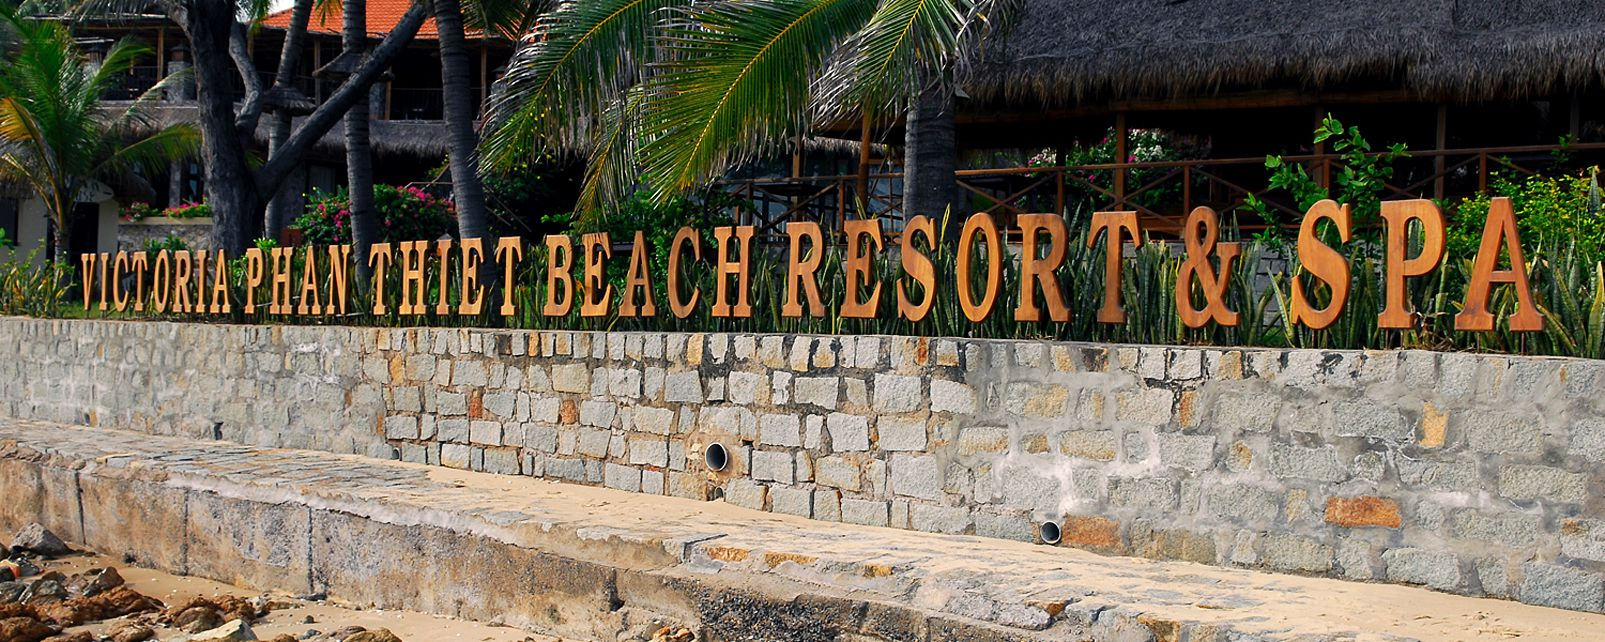 Hotel Victoria Beach Resort Spa